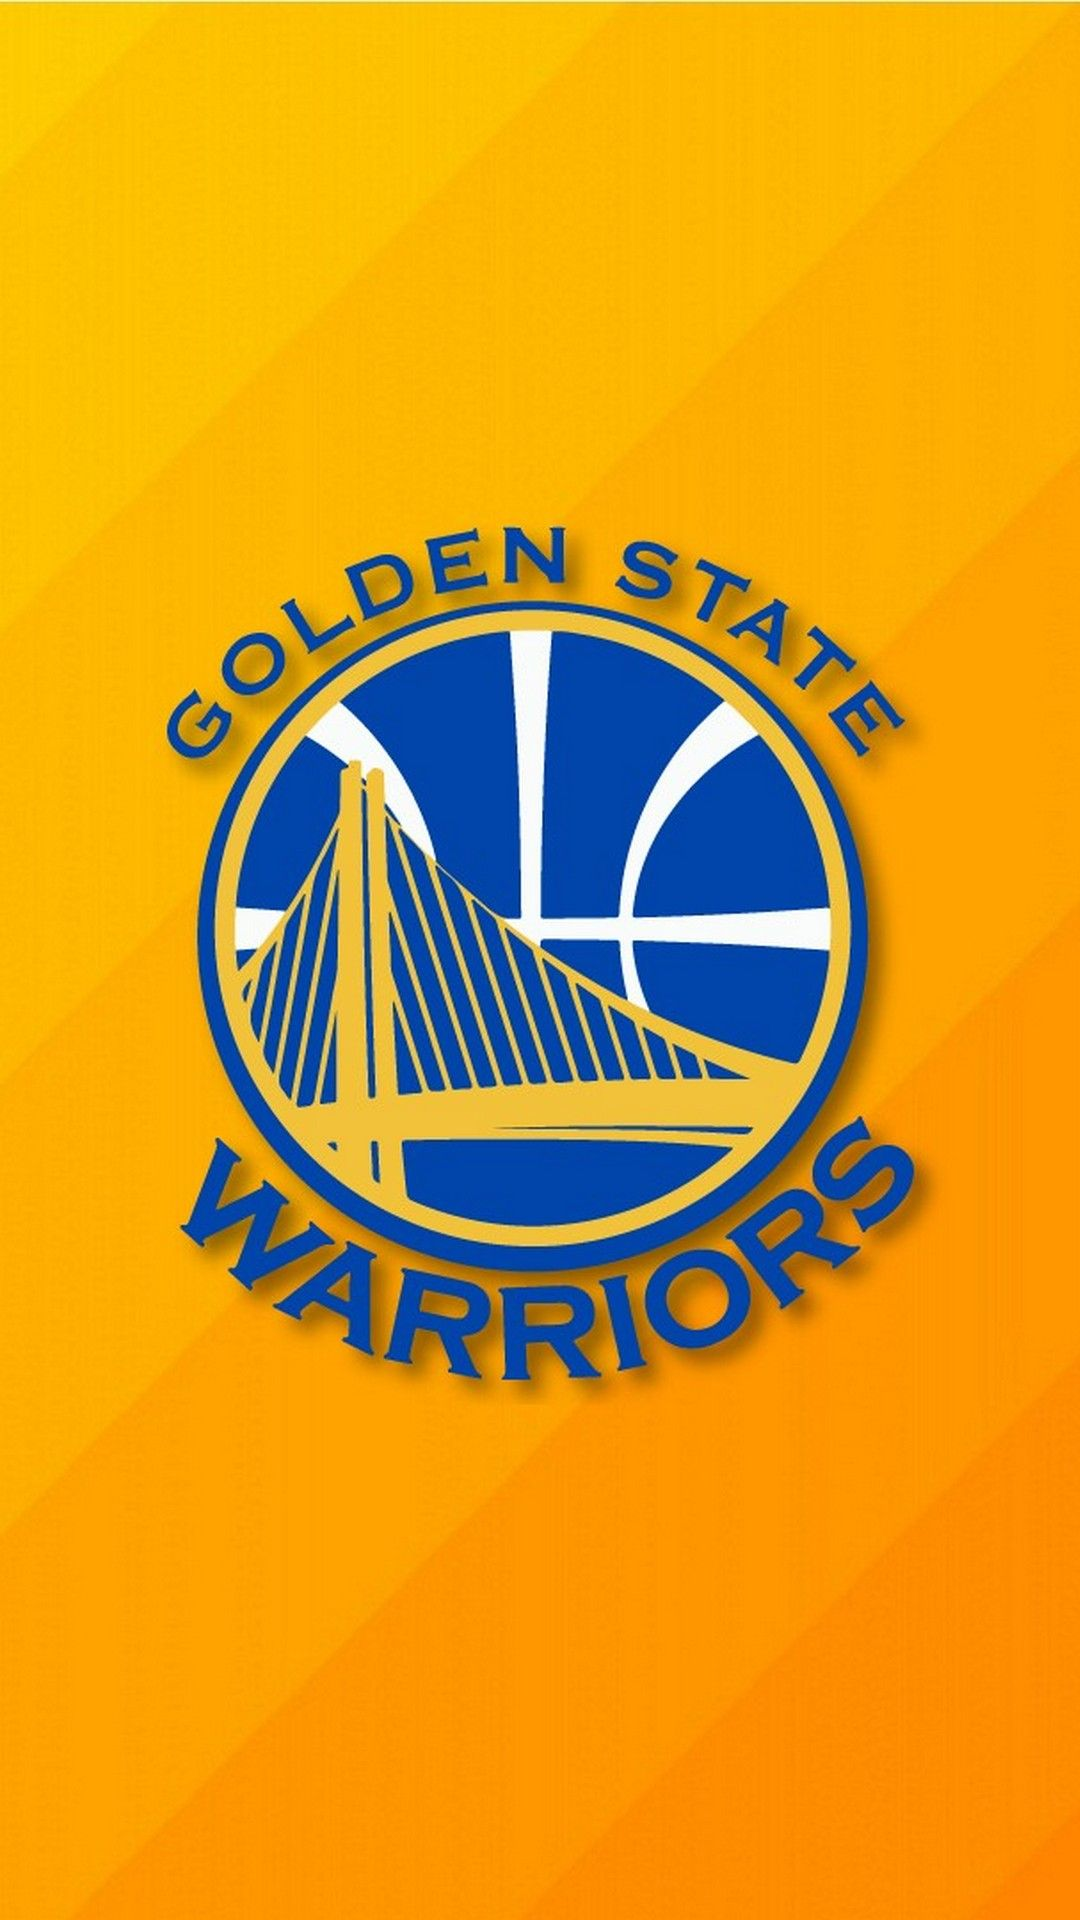 Golden State Warriors Iphone Wallpaper Free Large Images Goldenstate Golden State Warriors Wallpaper Golden State Warriors Basketball Golden State Warriors